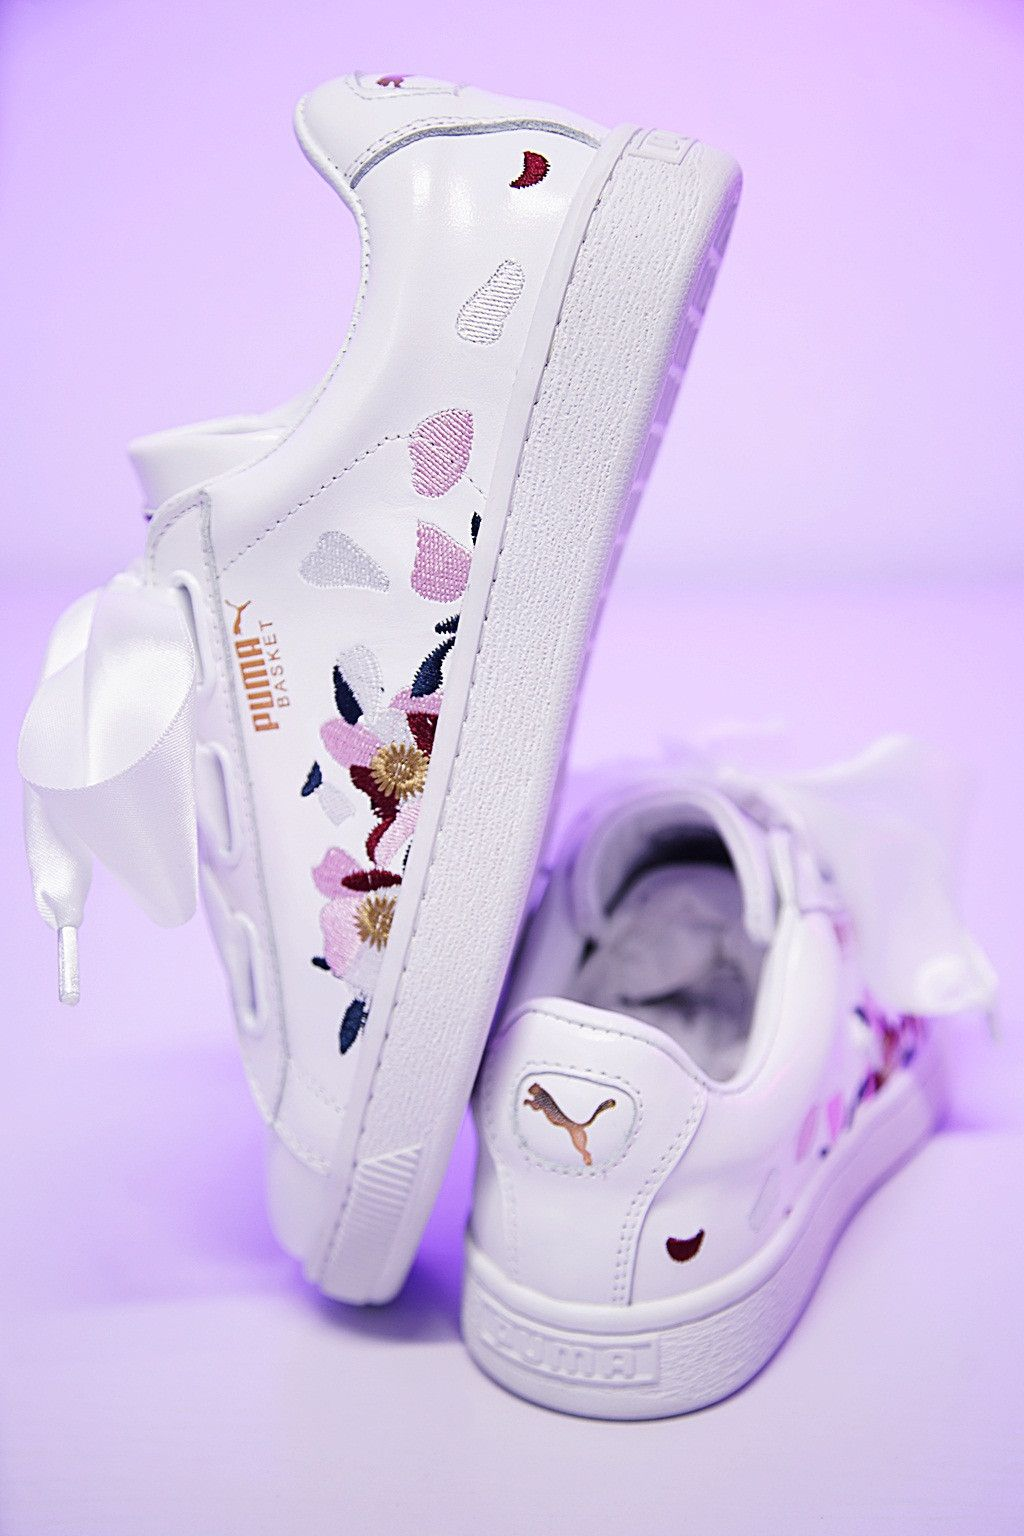 separation shoes 1cb5f 81599 PUMA ID BASKET HEART EXPLOSIVE FLORAL EMBROIDERED SNEAKER ...